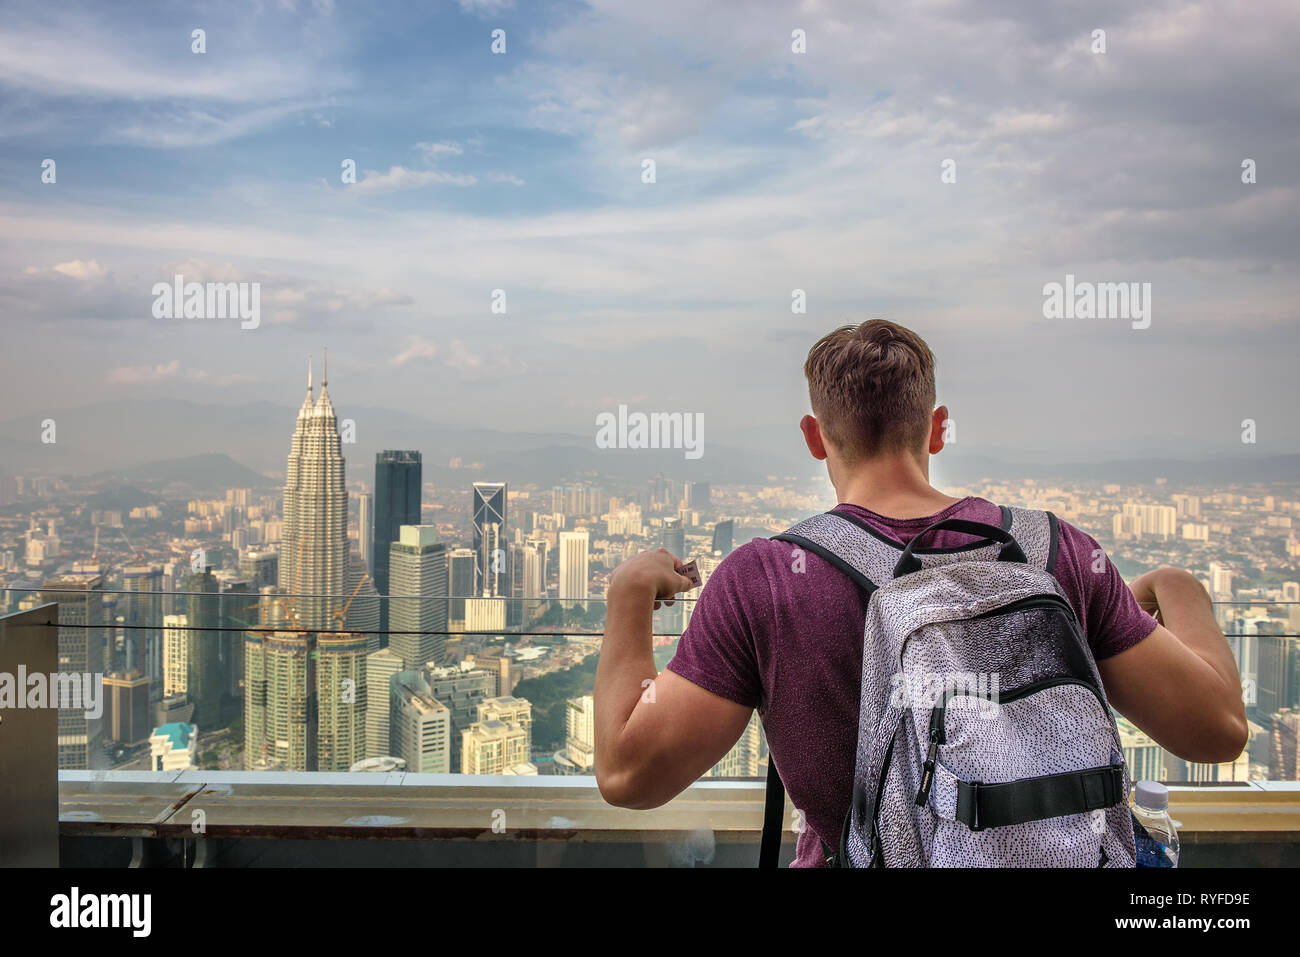 Tourist with a backpack enjoys the panoramic view of the Kuala Lumpur skyline - Stock Image